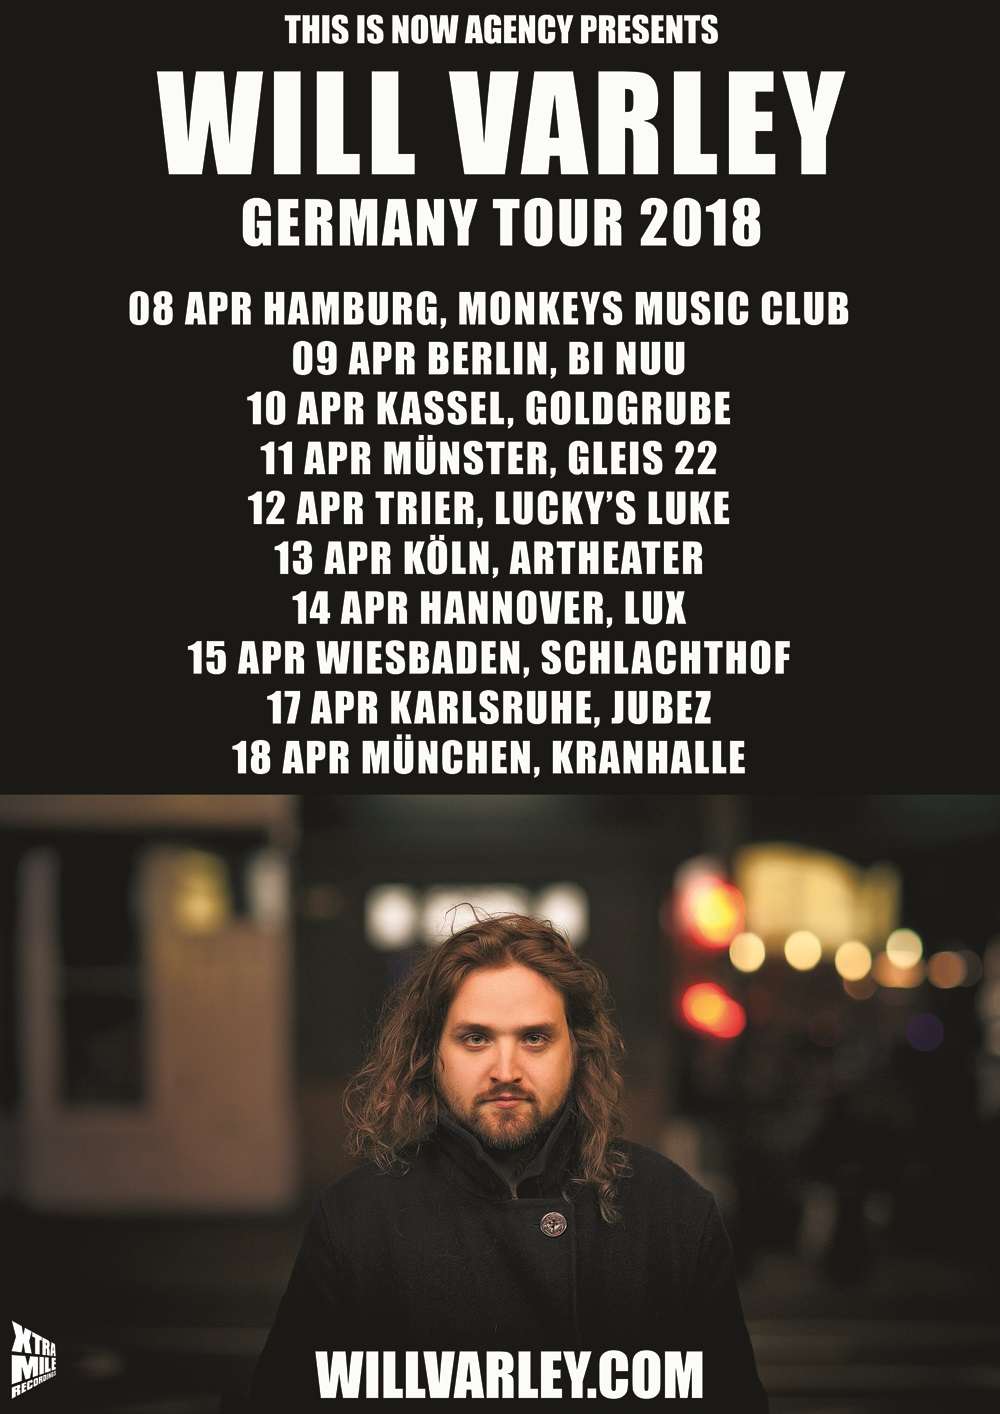 WV GERMANY TOUR 2018 WEB.jpg